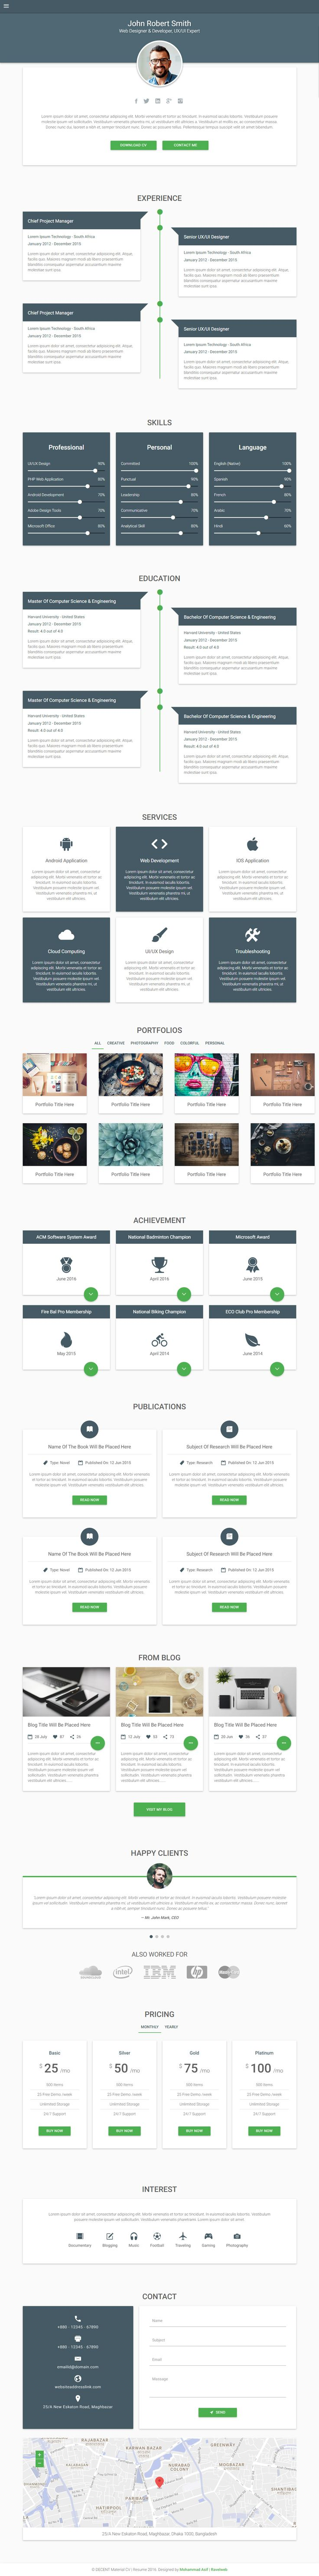 decent is premium responsive retina html5 template material design bootstrap 3 one page cv templatewebsite templatetemplatesbest resumematerial design